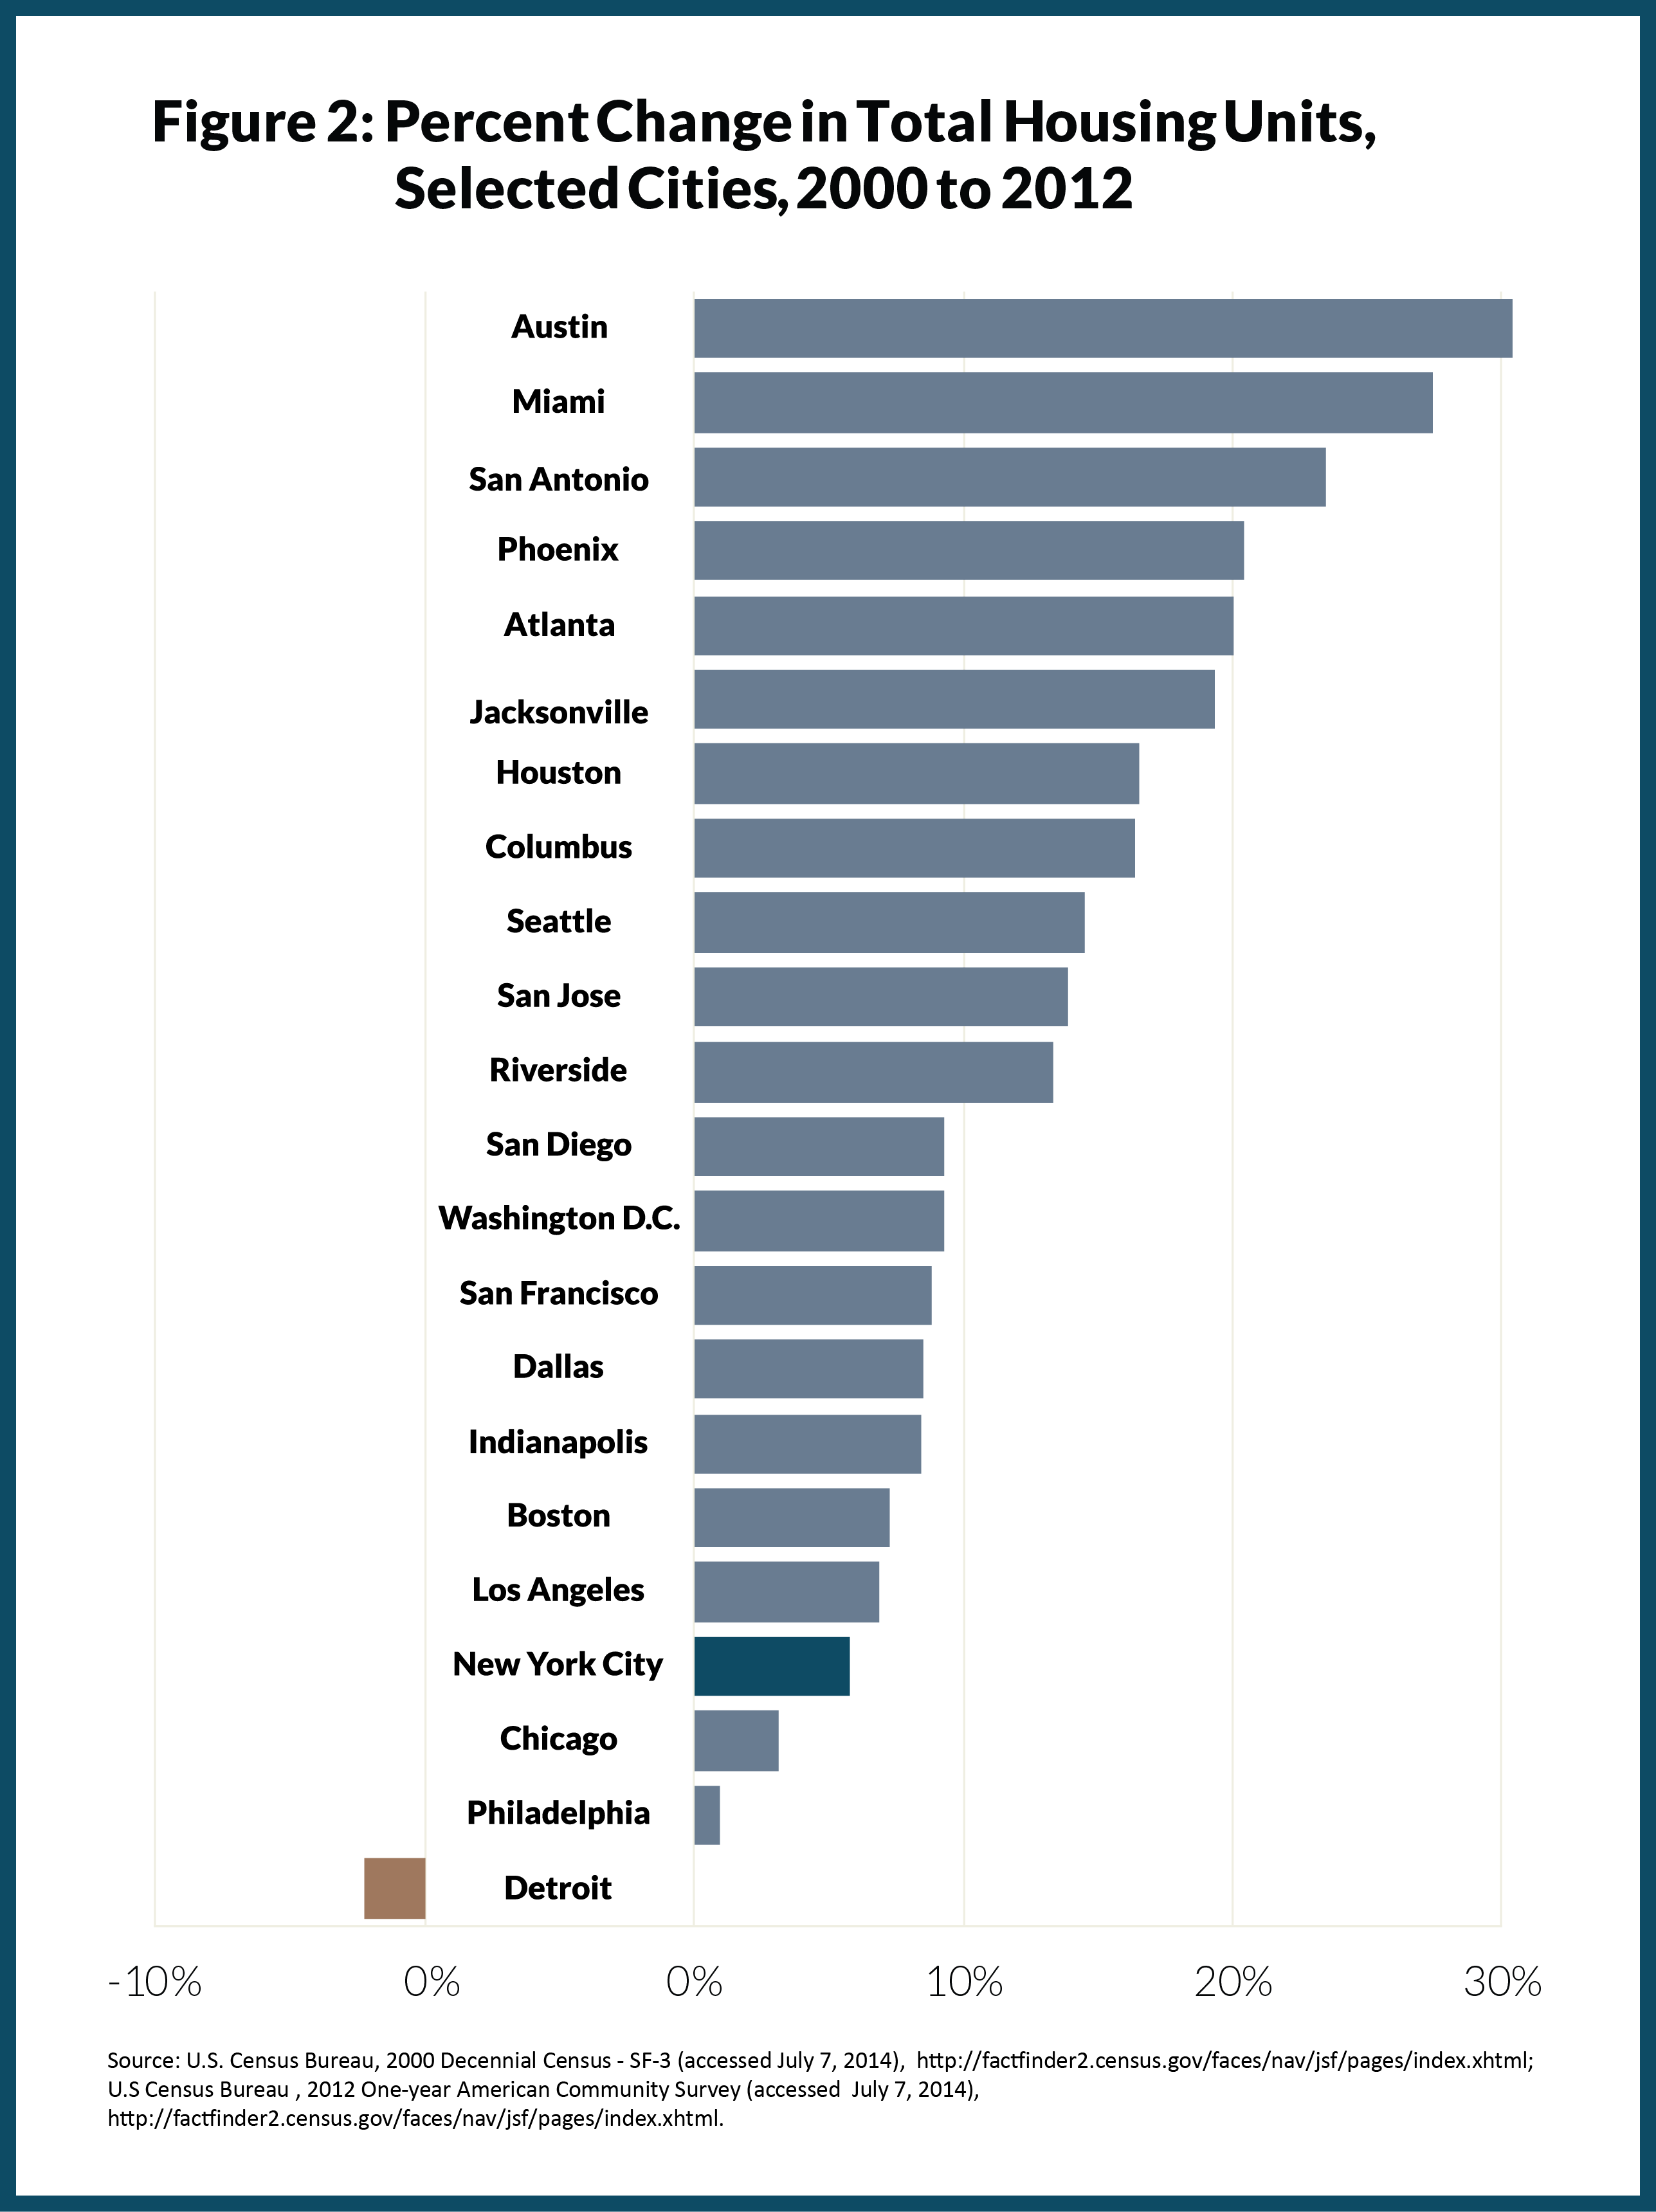 Figure 2: Percent Change in Total Housing Units, Selected Cities, 2000 to 2012